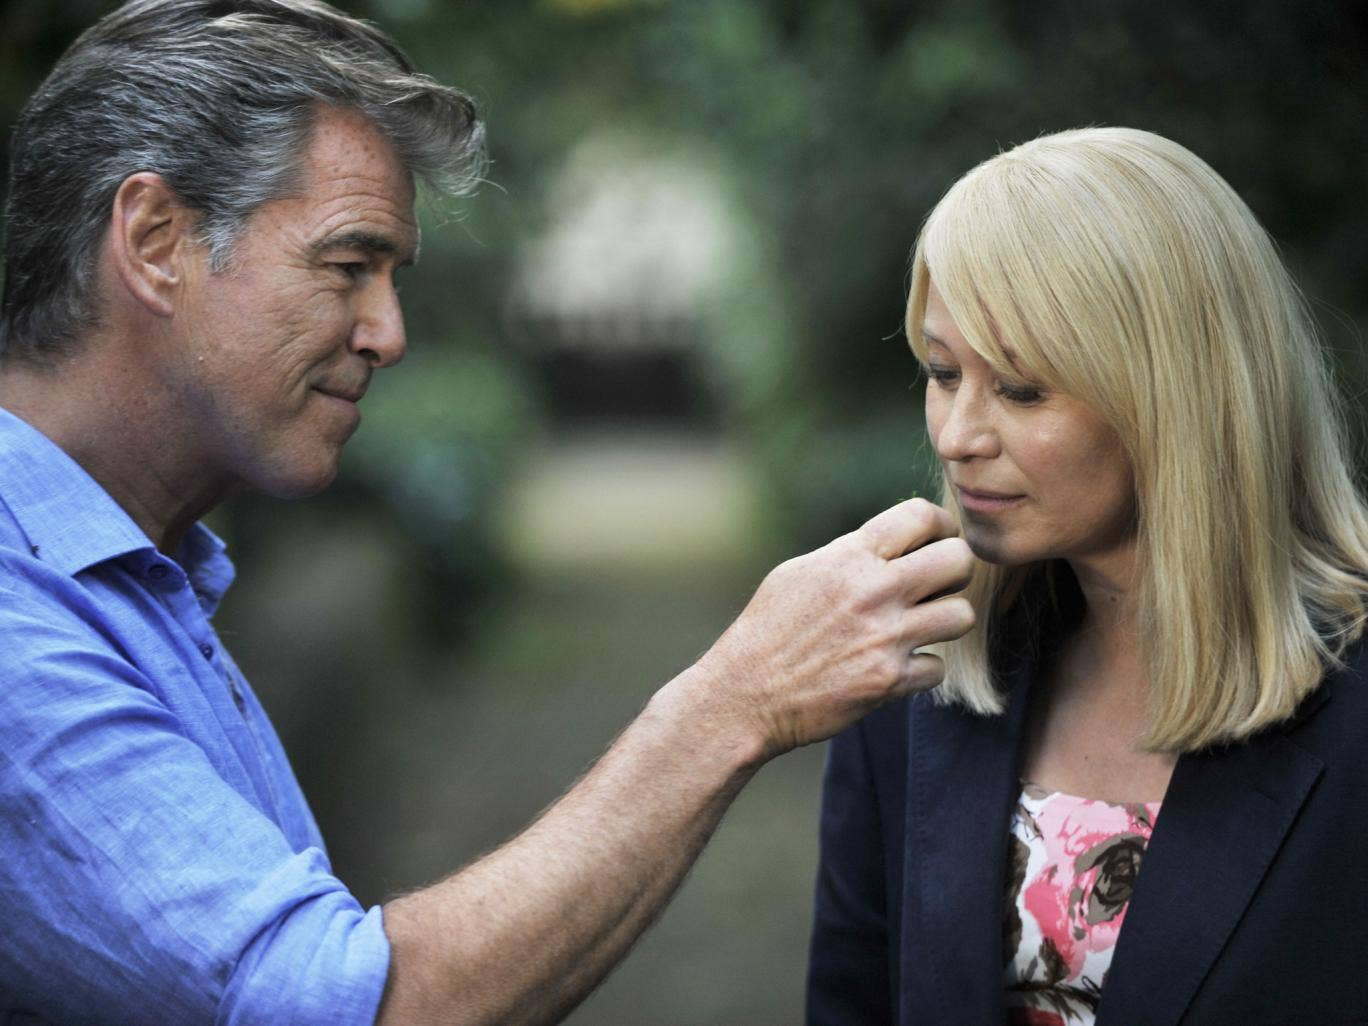 'That's amore': Pierce Brosnan with Trine Dyrholm in Italy